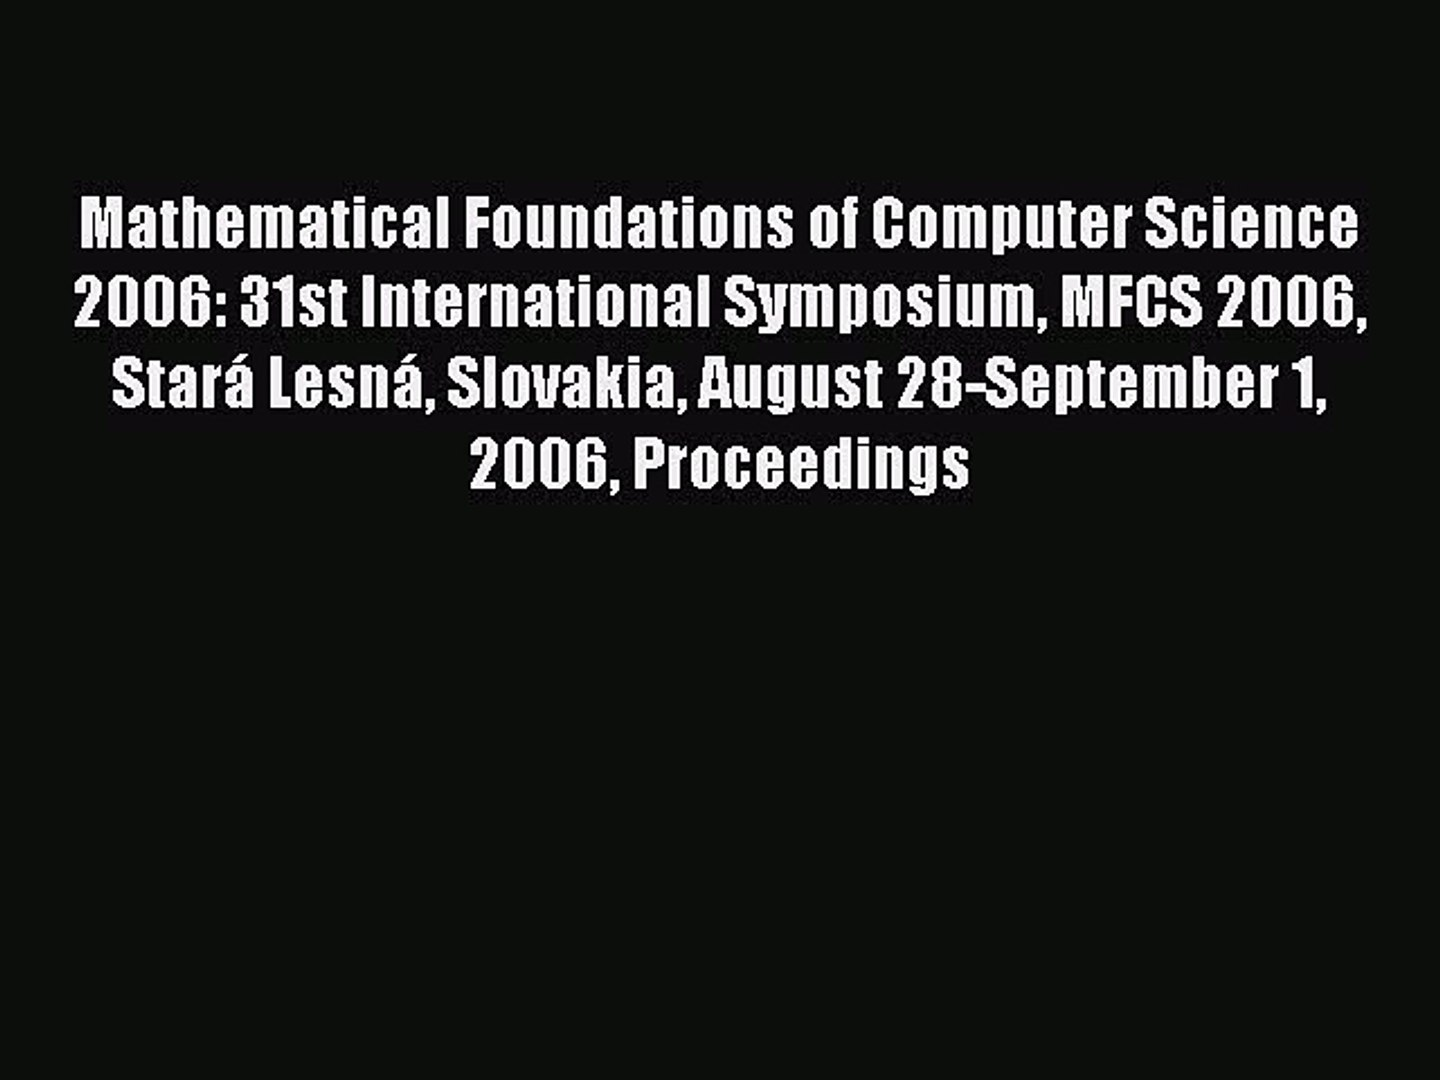 Read Mathematical Foundations of Computer Science 2006: 31st International Symposium MFCS 2006